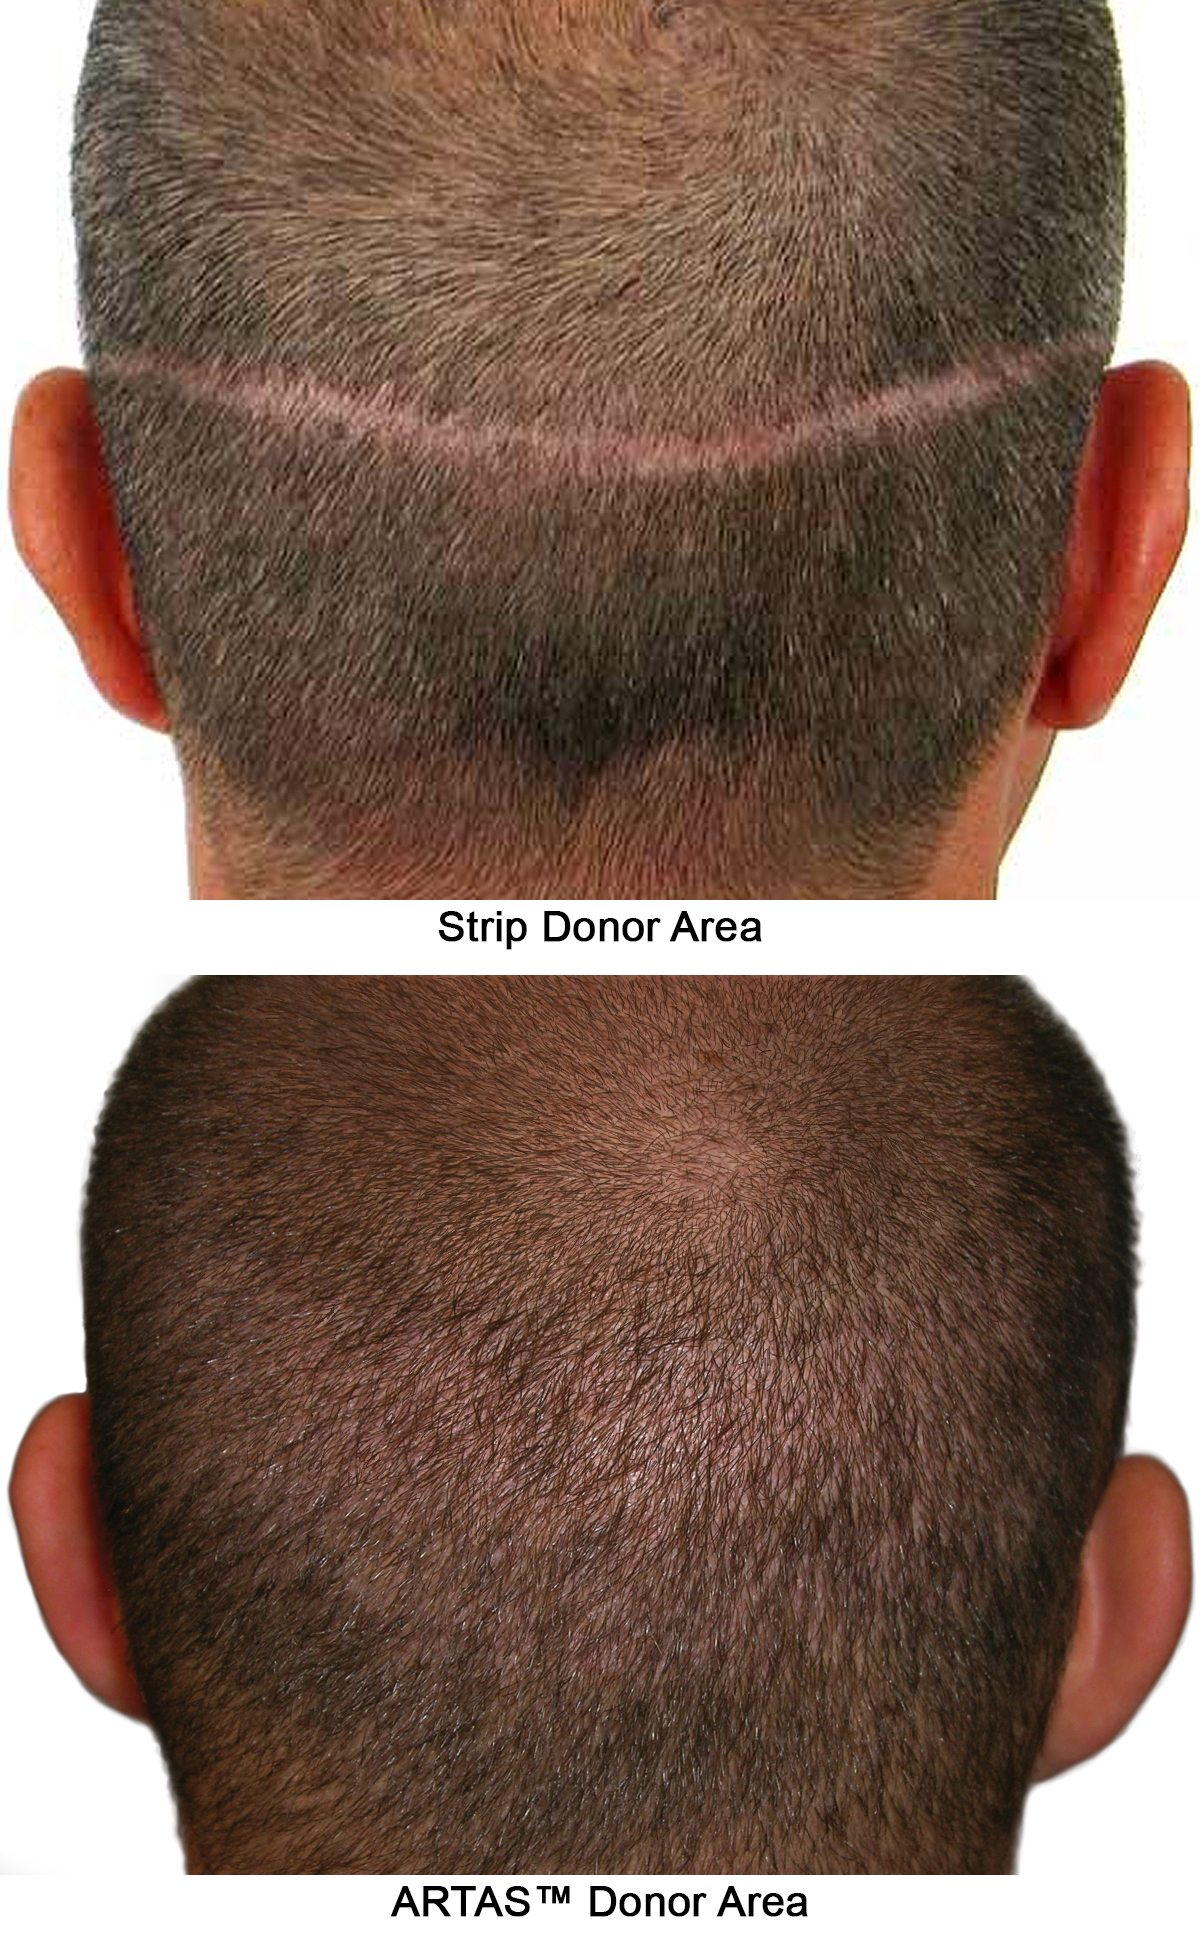 Donor Areas - Hair Restoration Atlanta GA